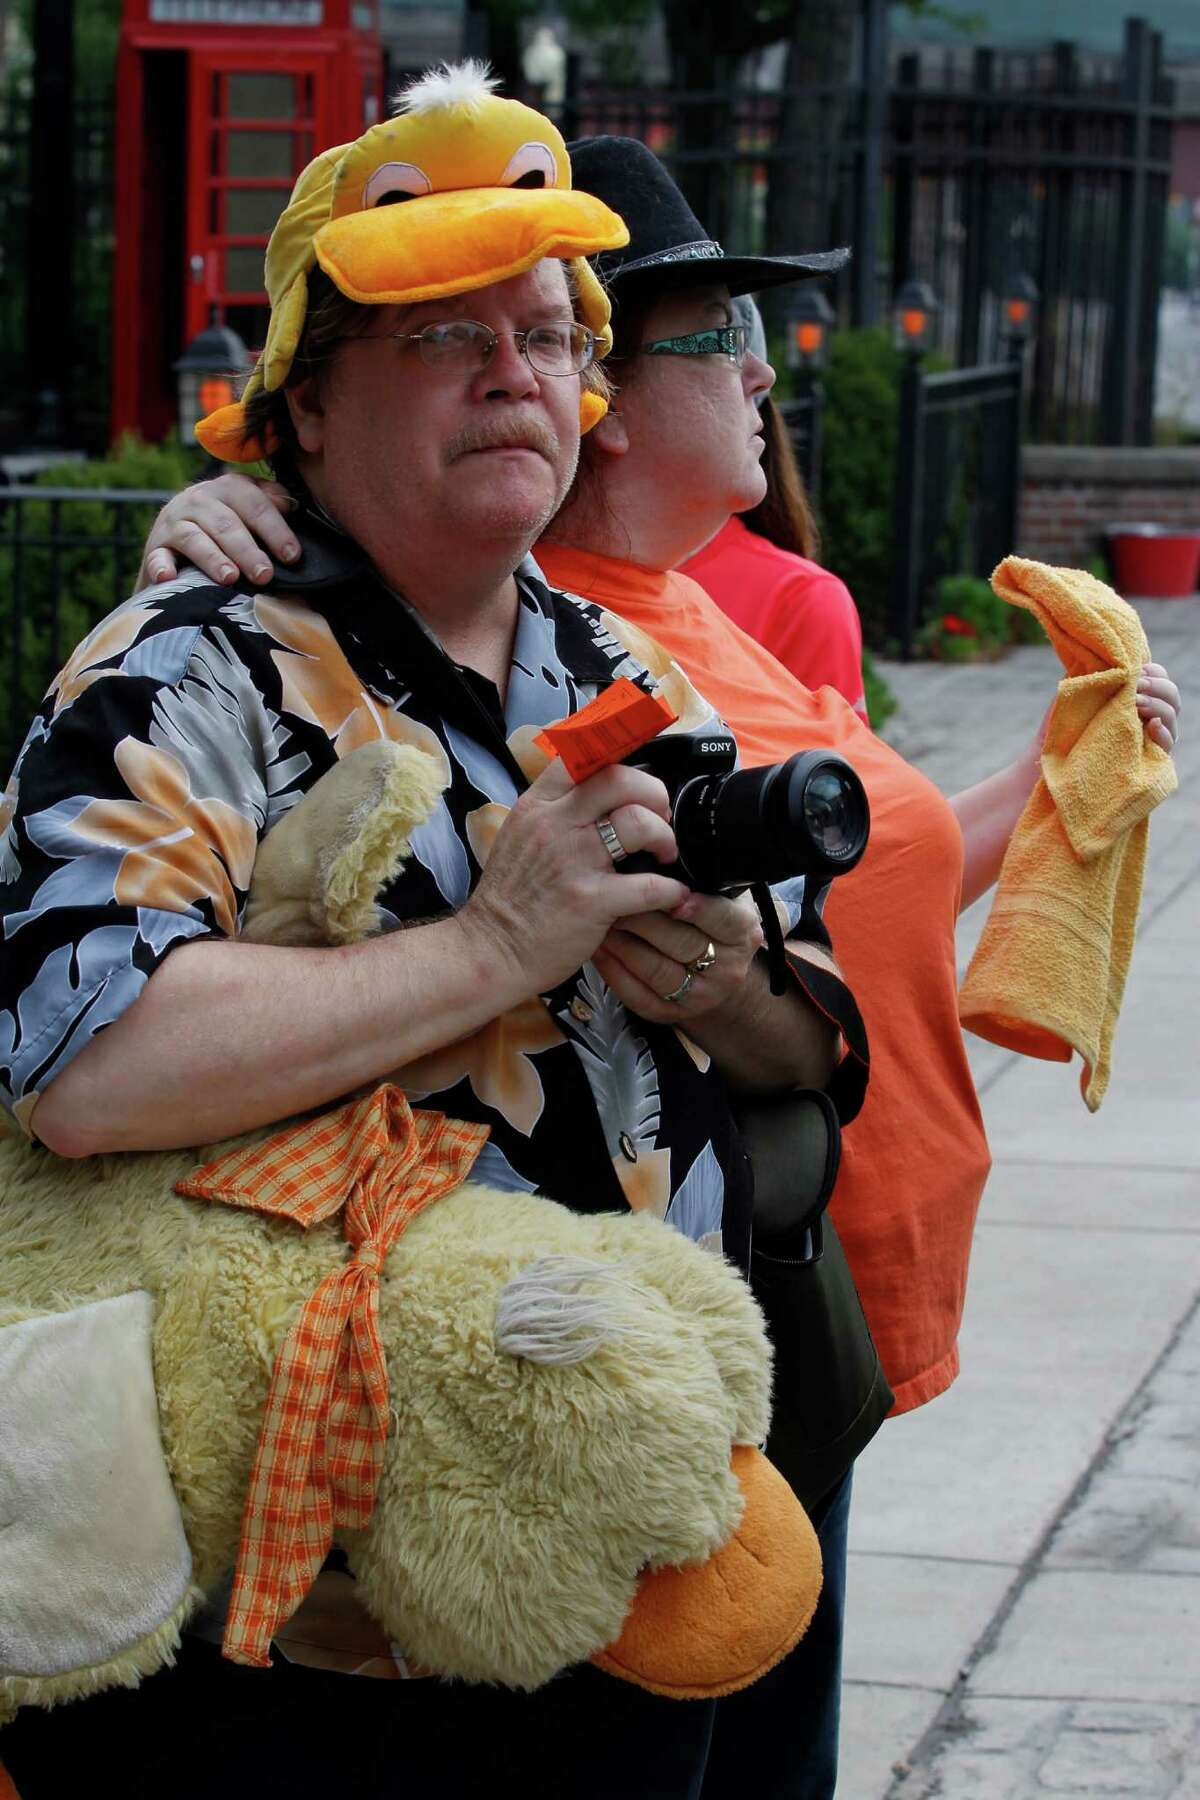 Paul and Cindy Pearson, of Troy, wait in line to board the final Aqua Ducks tour Sunday, July 15, 2012, in Albany, N.Y. (Dan Little/Special to the Times Union)